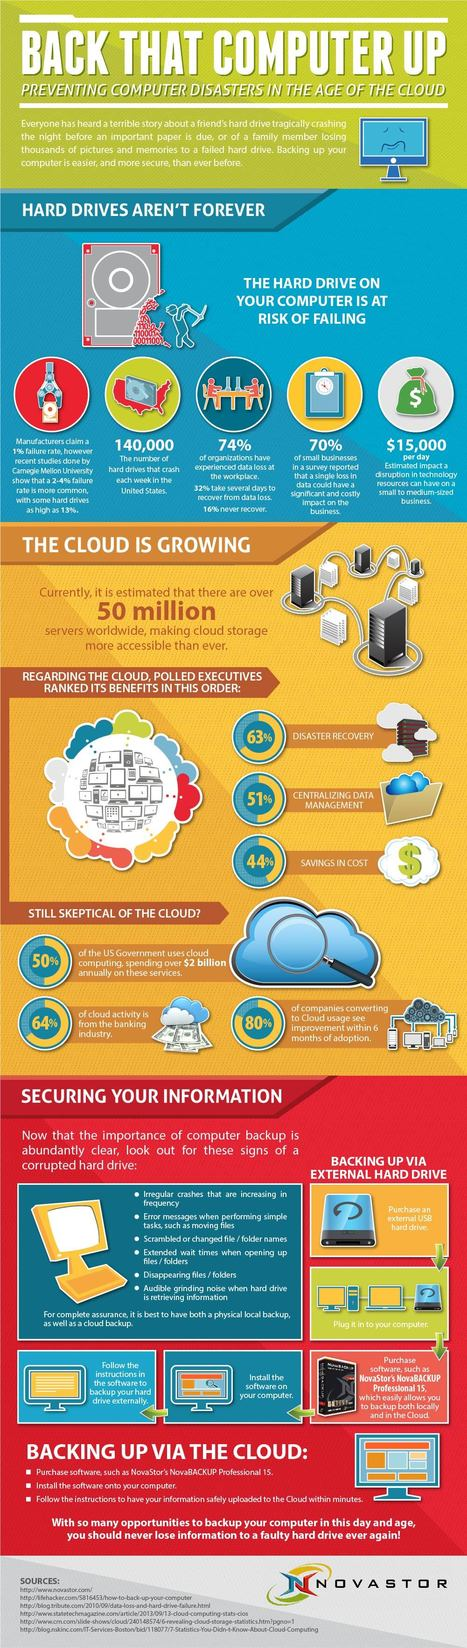 INFOGRAPHIC: Preventing Disasters In The Cloud | Future of Cloud Computing and IoT | Scoop.it